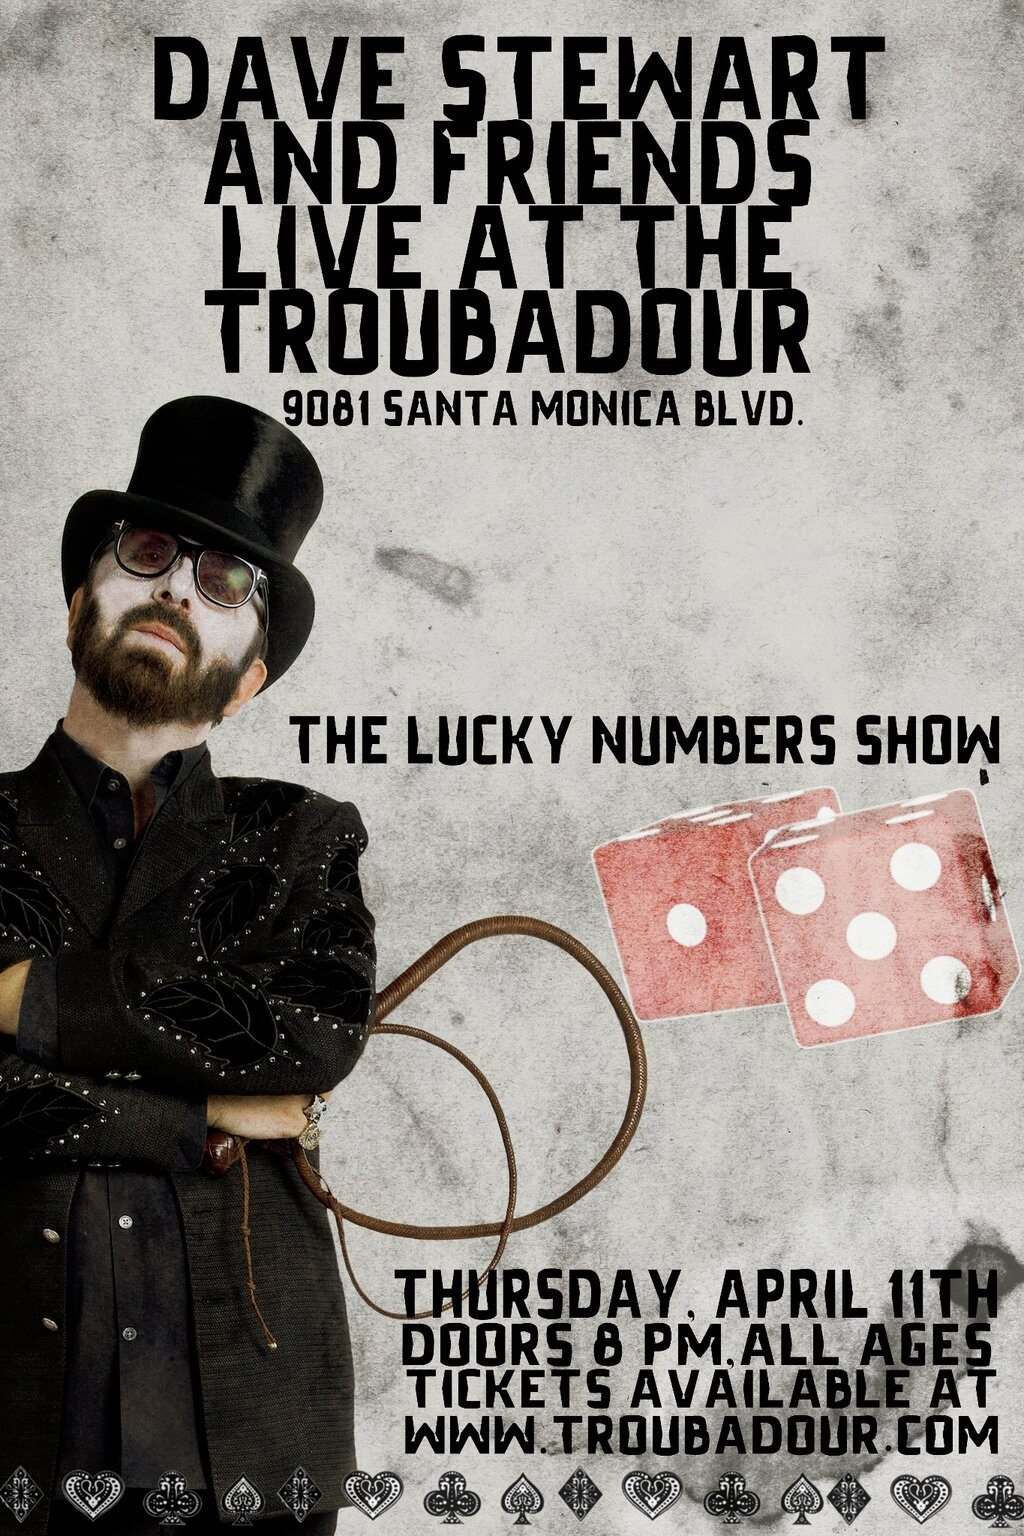 The Lucky Numbers Show – Dave Stewart Rolls The Dice At The Troubadour On April 11th